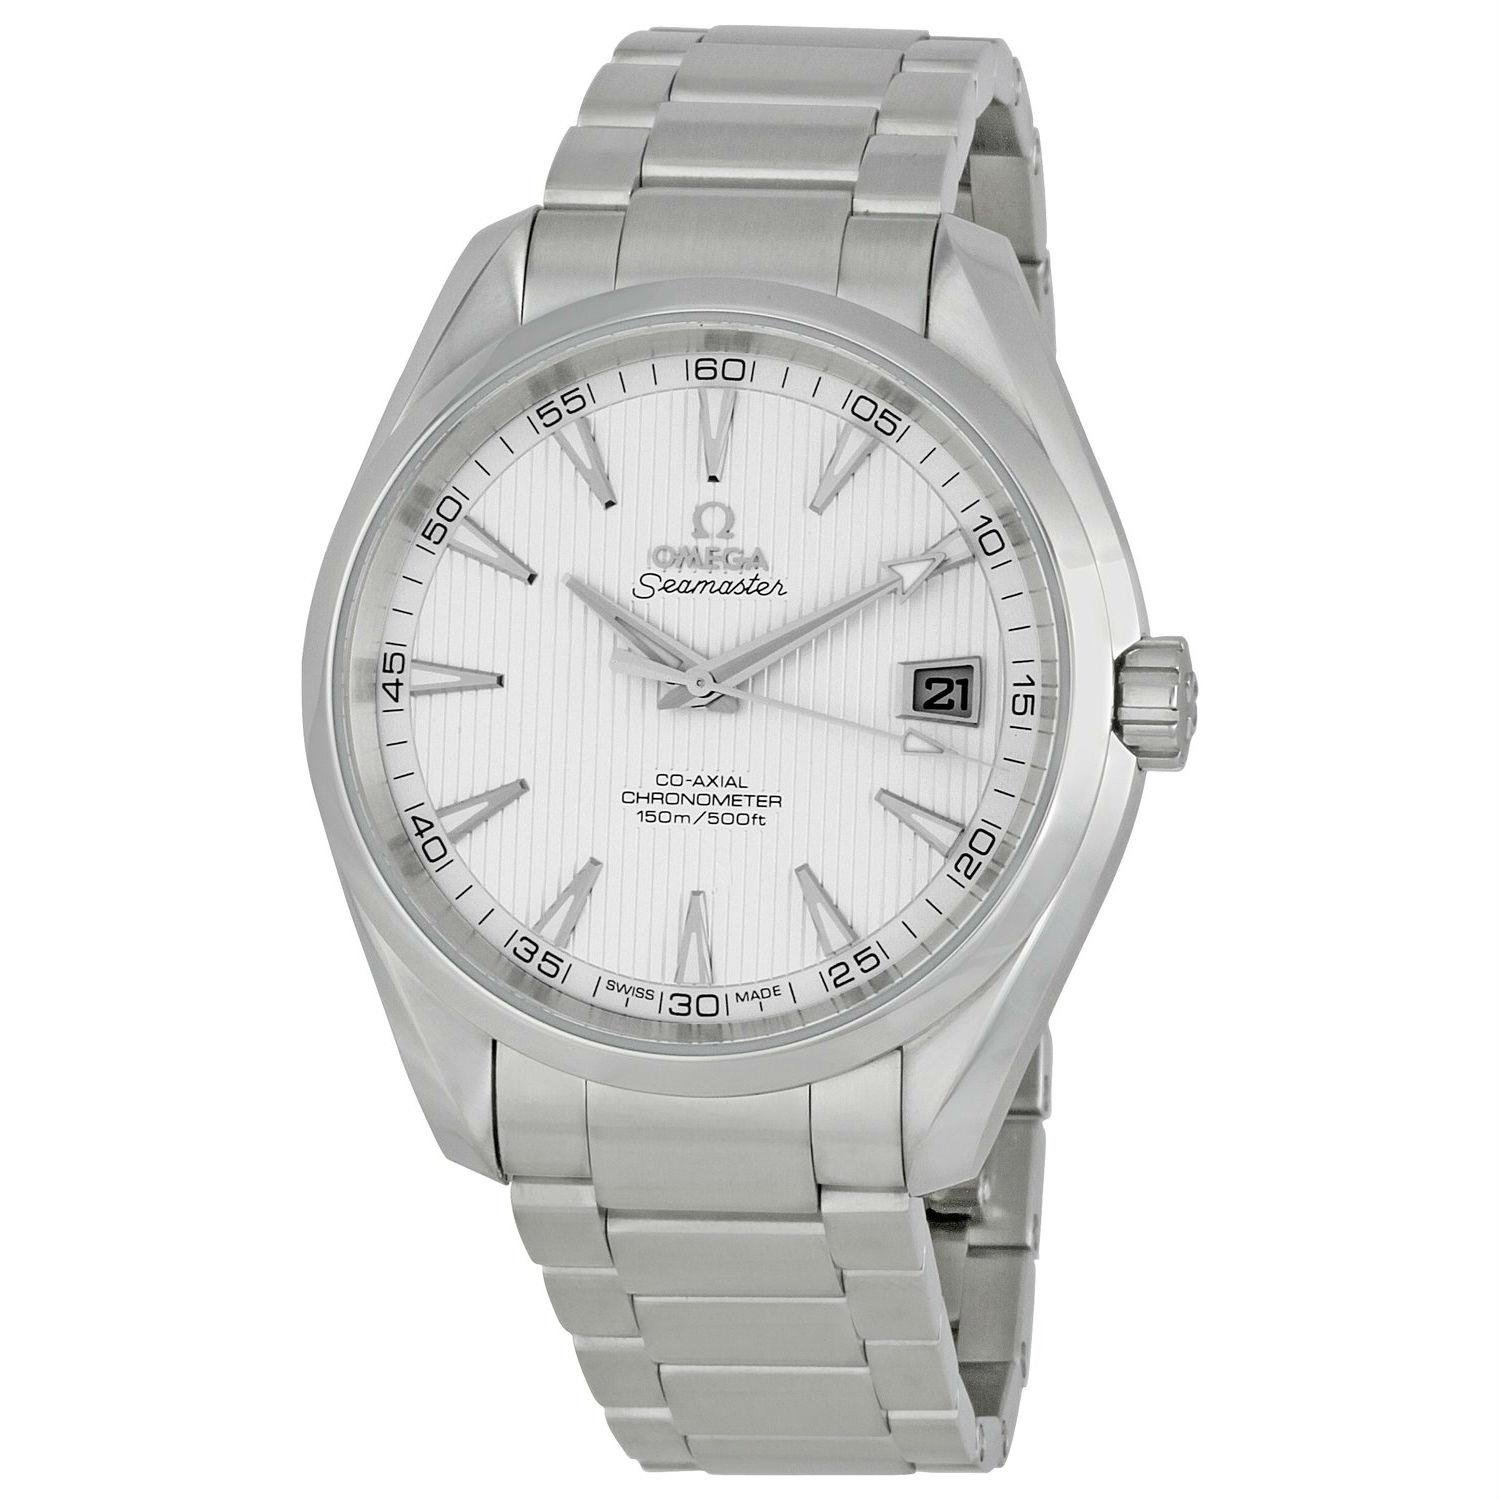 Omega Men s 231.10.42.21.02.001 Seamaster Silver Dial Watch